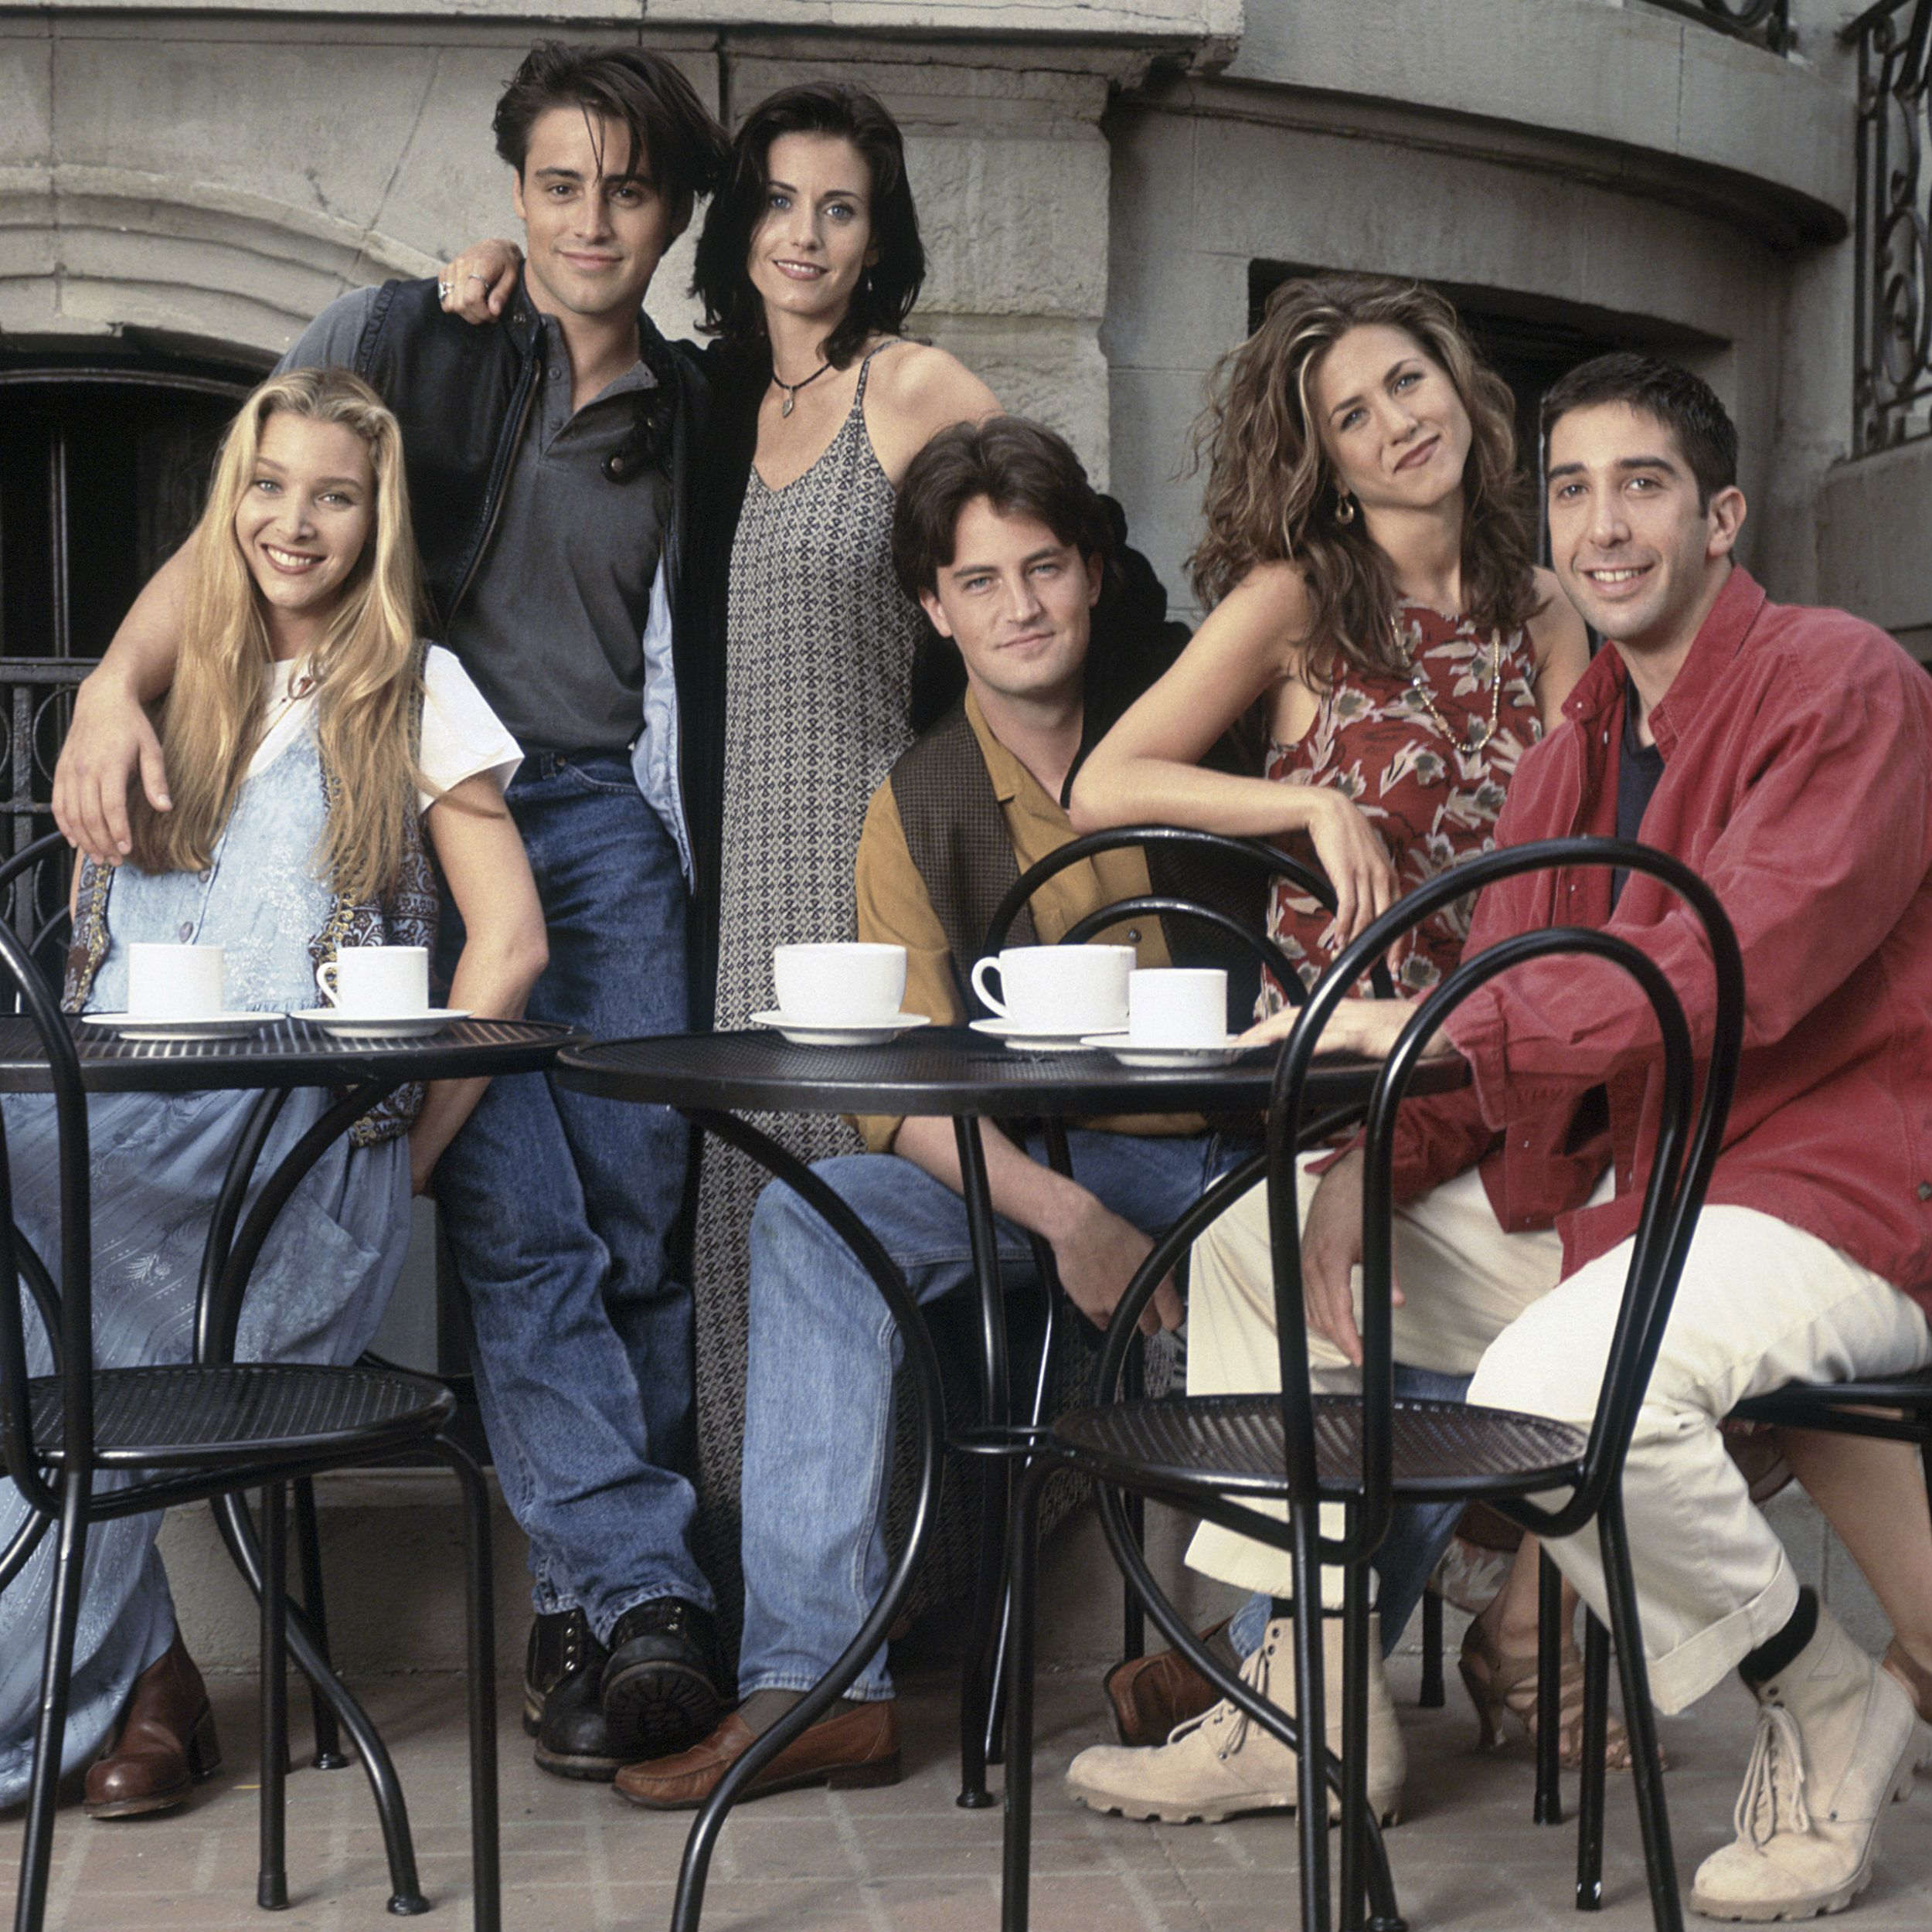 Friends cast share touching tribute to celebrate the show's 25th anniversary